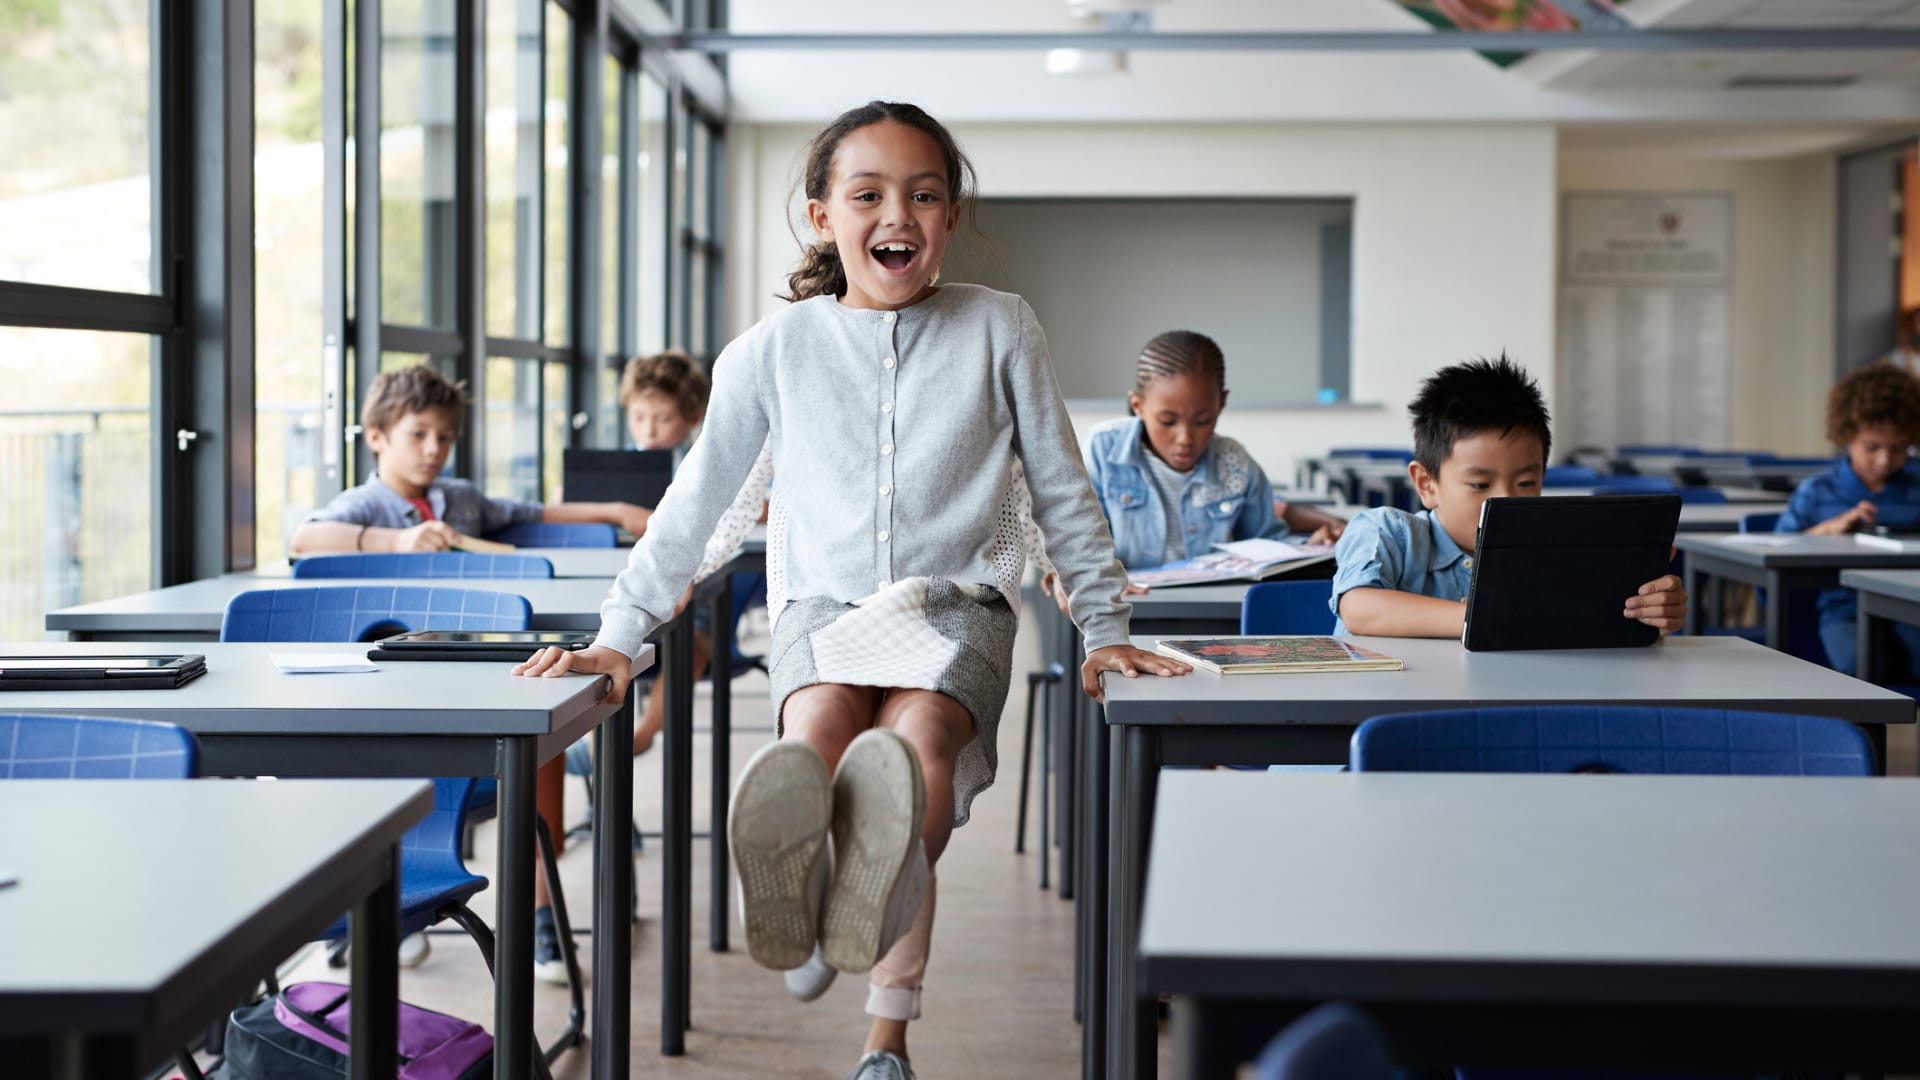 Unlearn These 3 Lessons From School